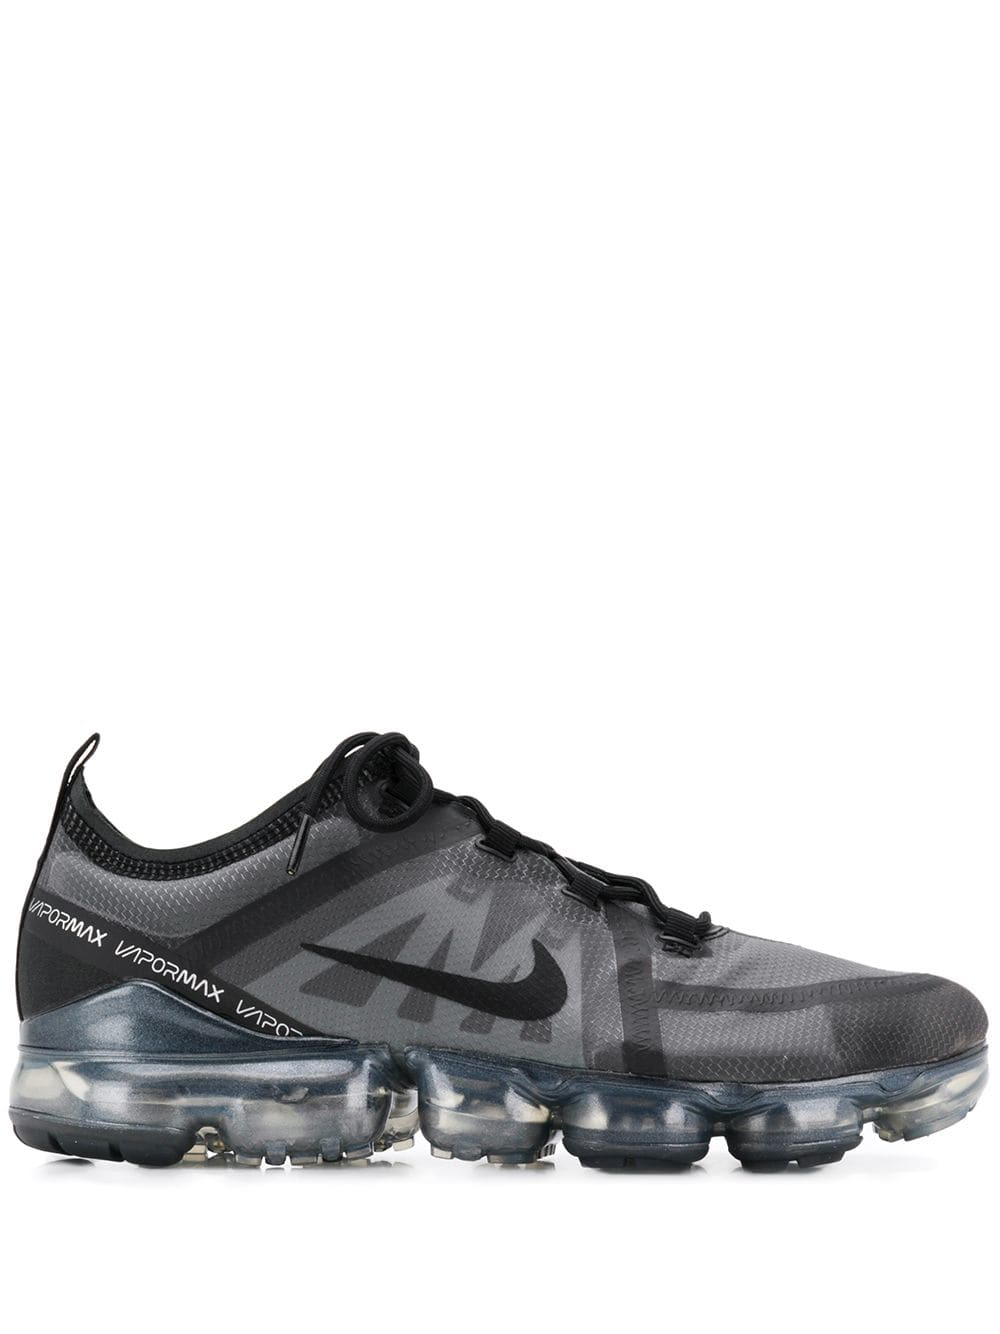 huge selection of cc621 ab4f0 Nike Nike Vapormax 2019 Sneakers | Products in 2019 | Nike ...